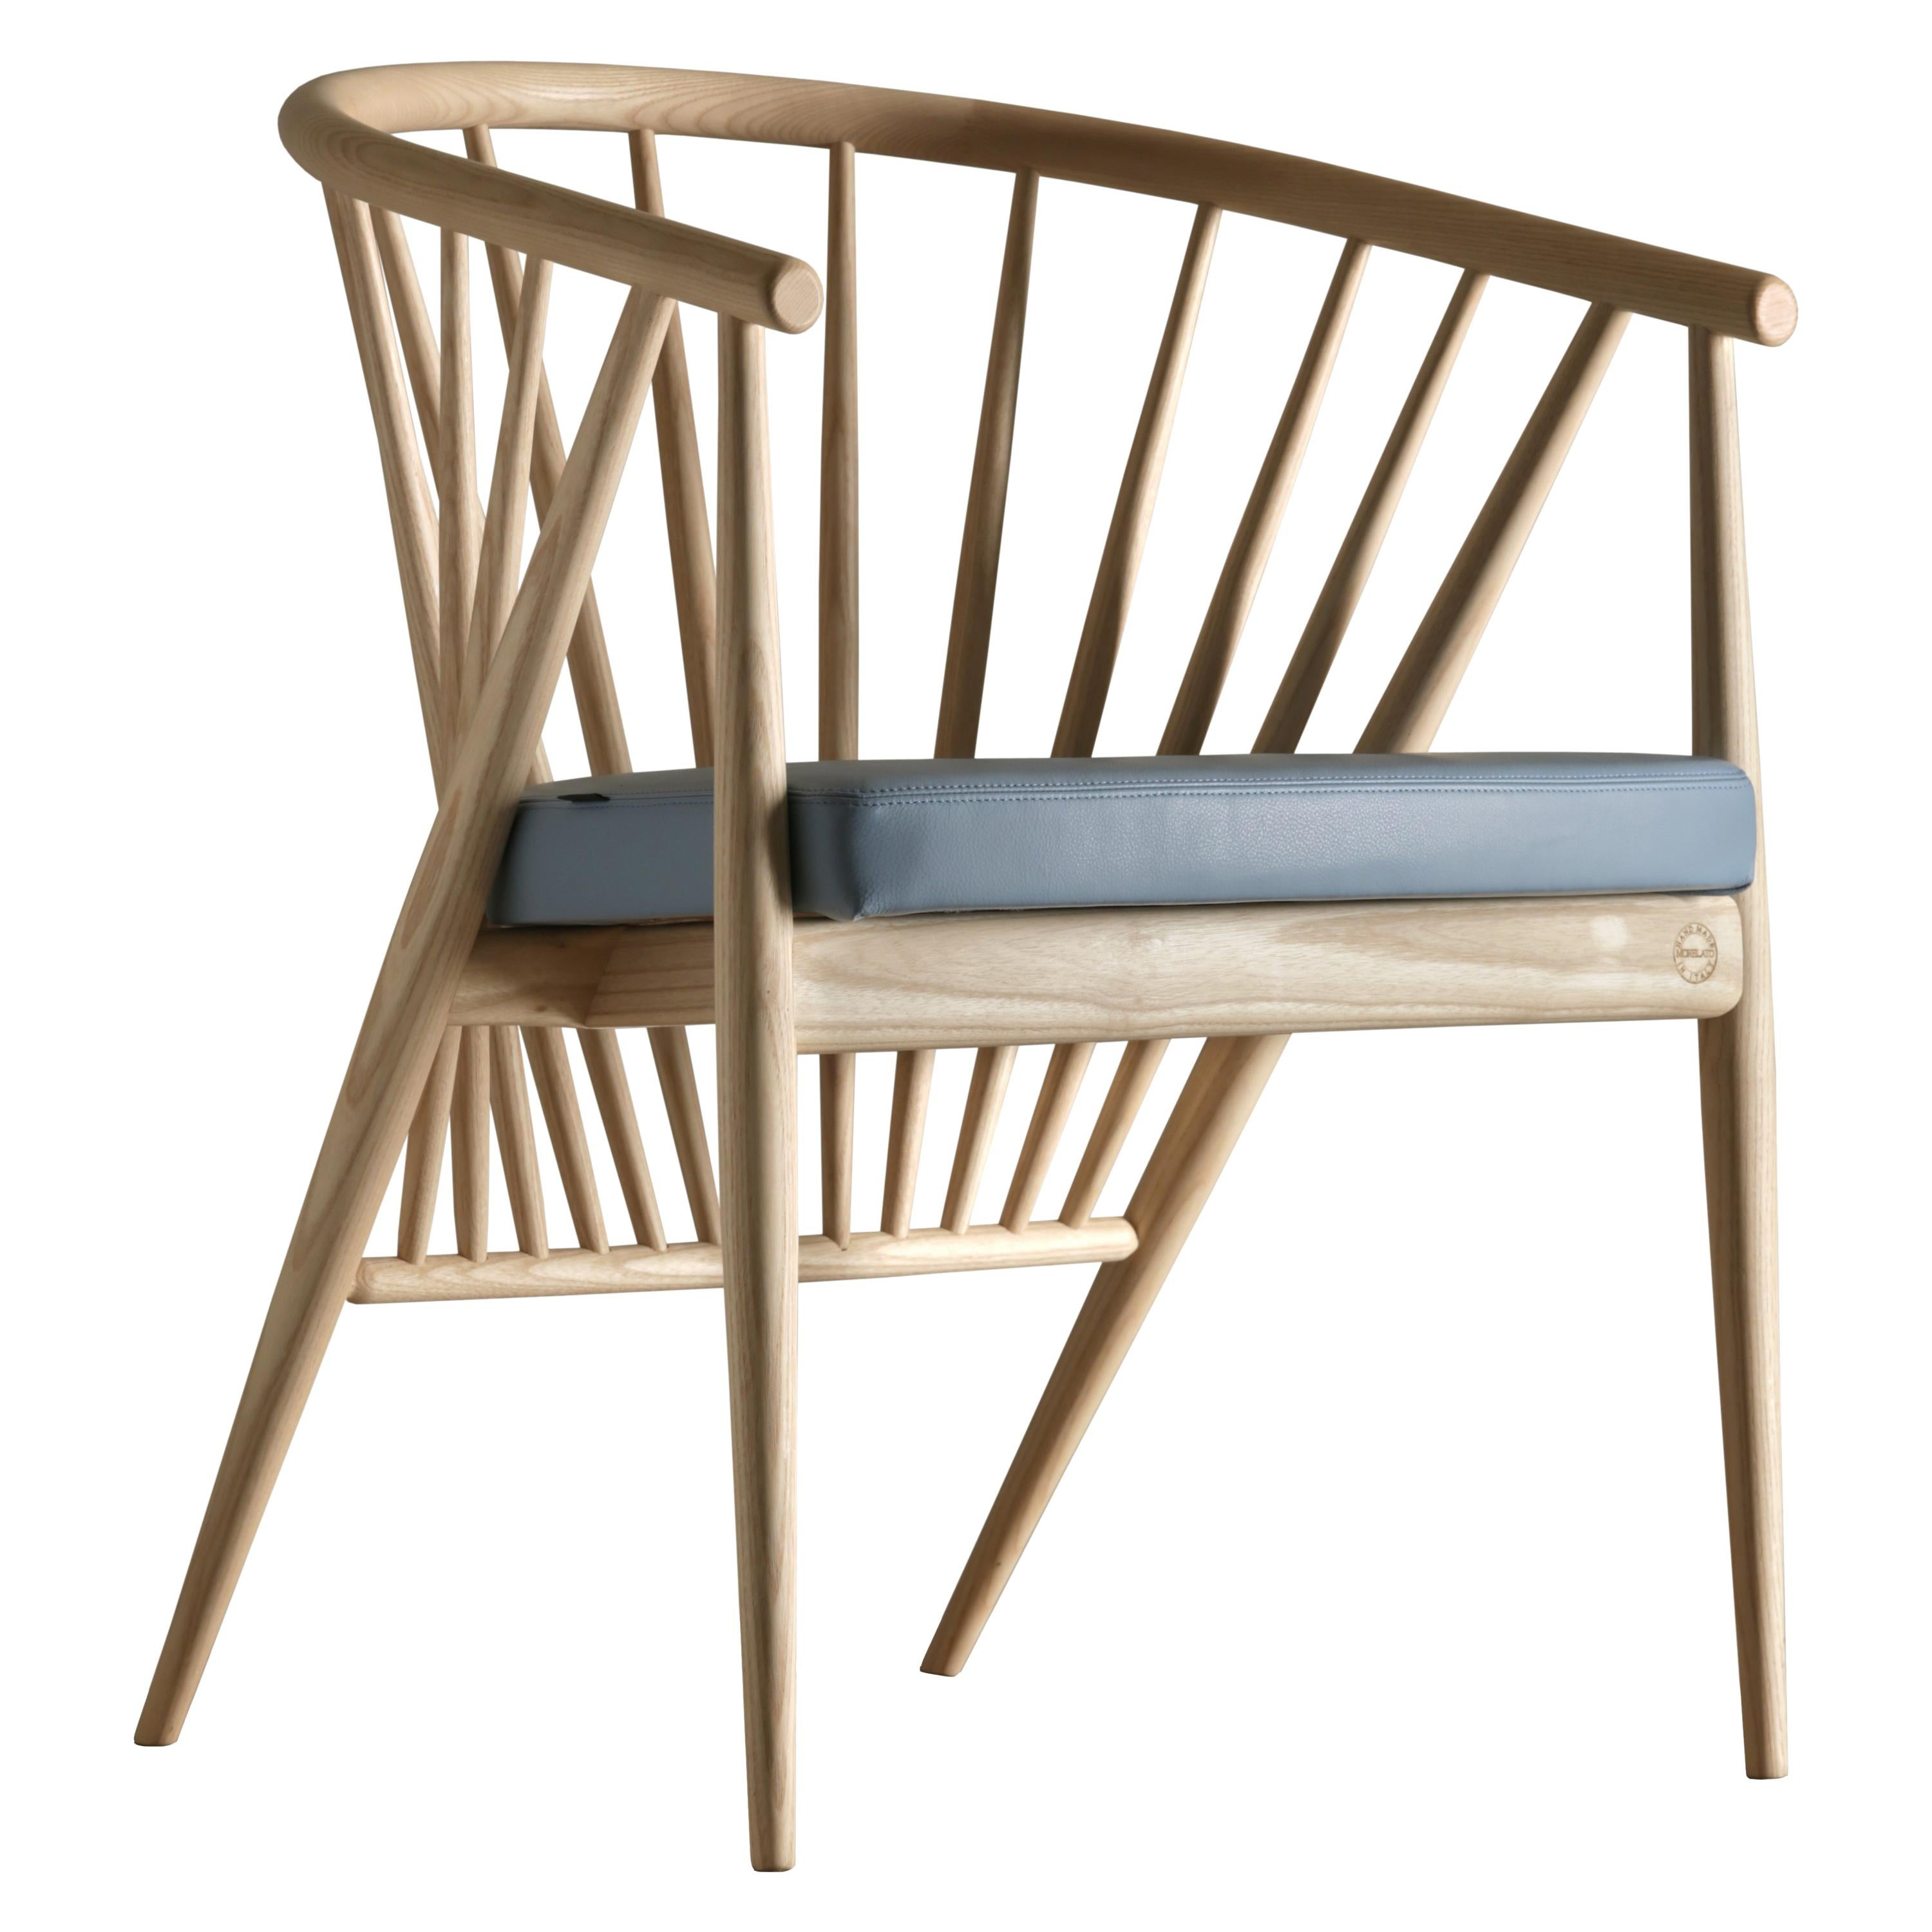 Jenny, Contemporary Upholstered Easy Chair in Hand Turned Ashwood, by Morelato